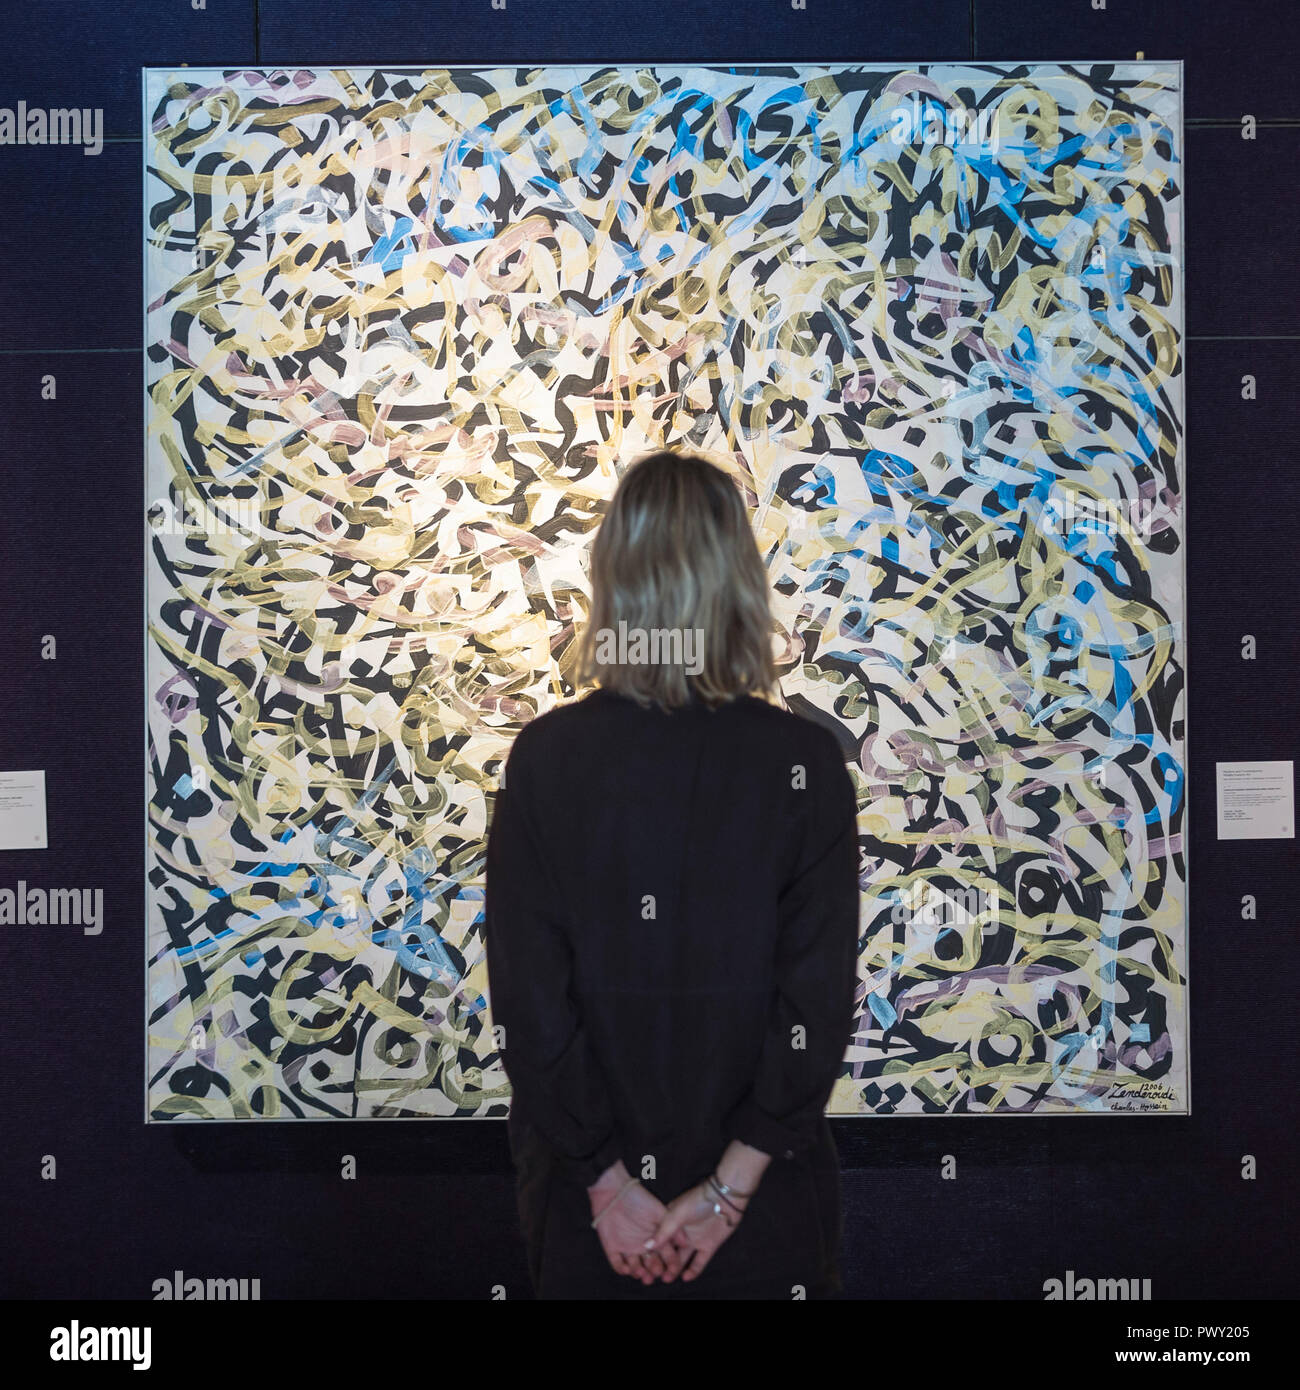 London, UK.  18 October 2018.  A staff member views 'Purple Pearl' by Charles Hossein Zenderoudi (Est. GBP40,000 to 60,000). Preview of Bonhams Asian Art Week which features works to be offered in the Islamic and Indian, Modern and Contemporary Middle Eastern art sale on 23 October and Modern and Contemporary South Asian art sale on 24 October.   Credit: Stephen Chung / Alamy Live News - Stock Image